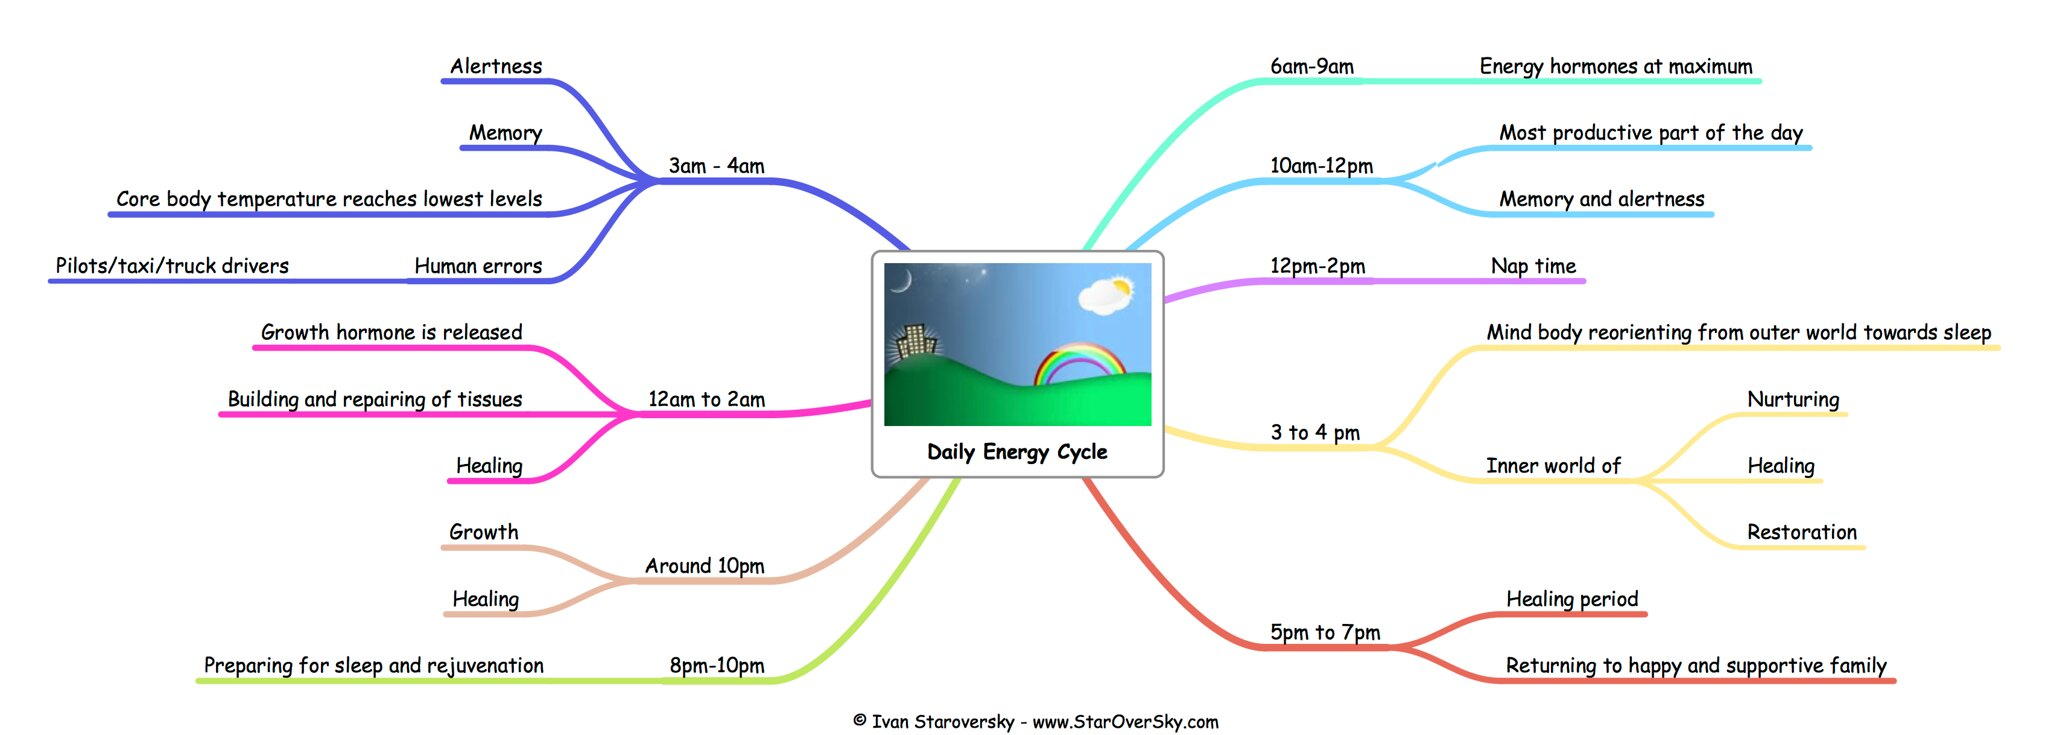 Daily Energy Cycle